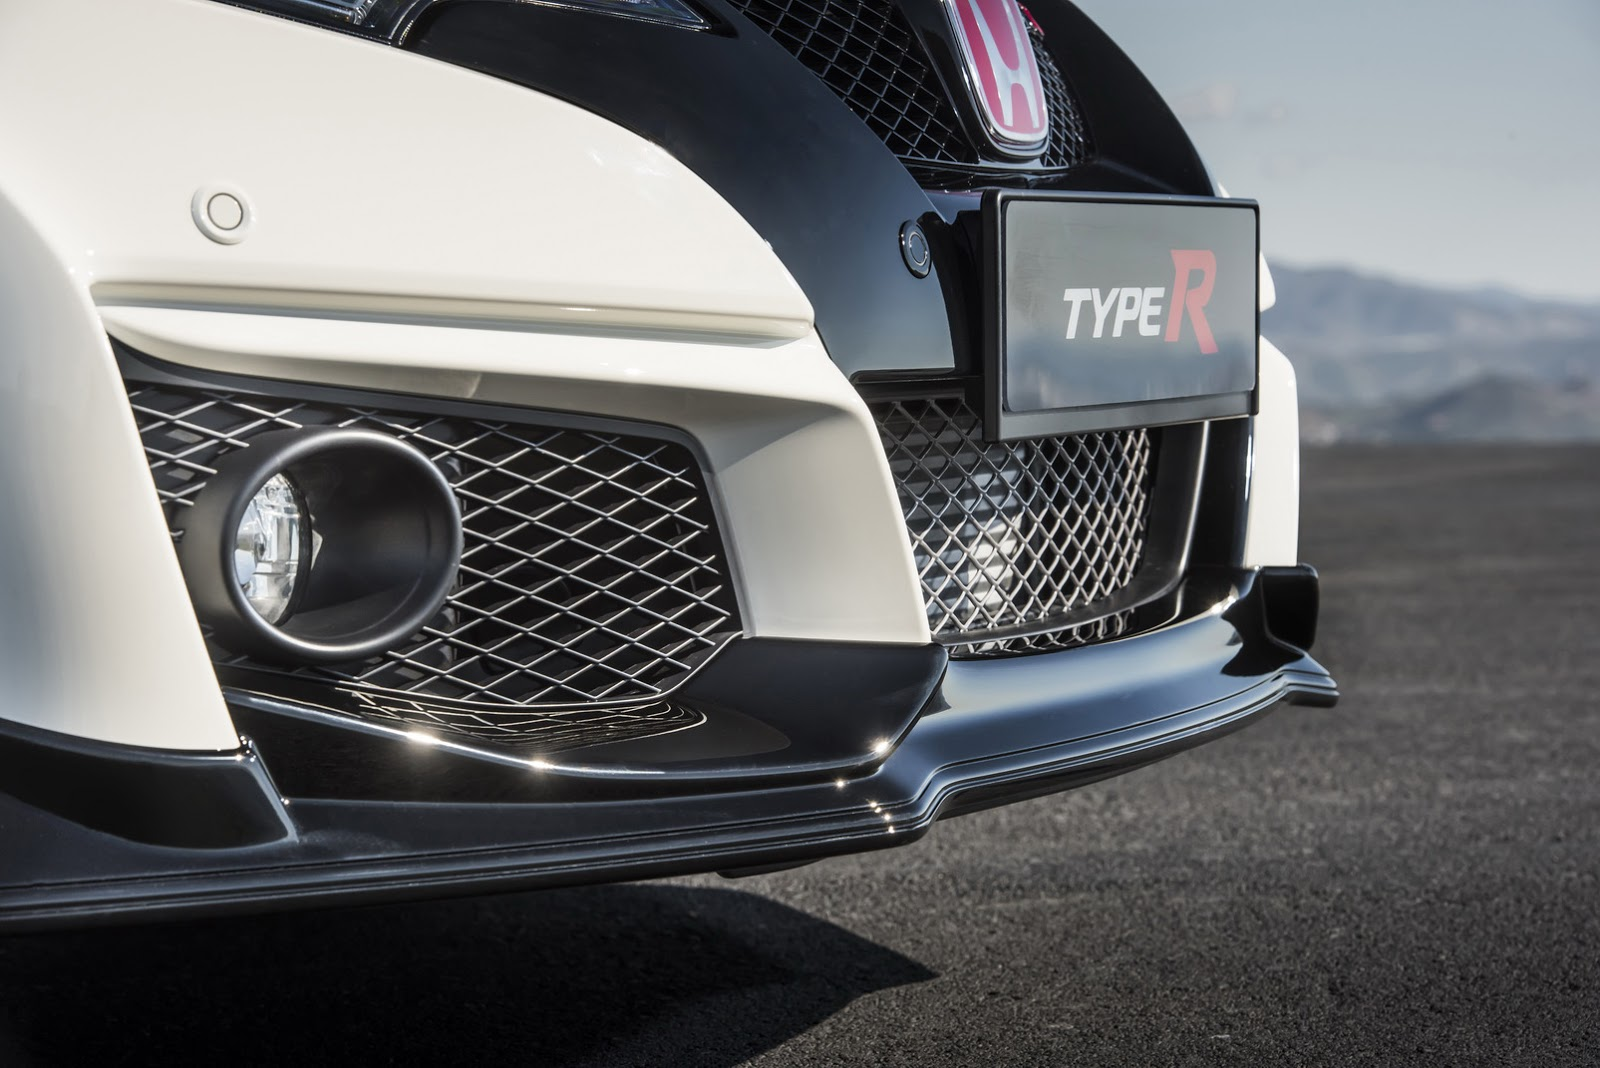 2015 honda civic type r will have a 167 mph top speed for Honda civic type r top speed